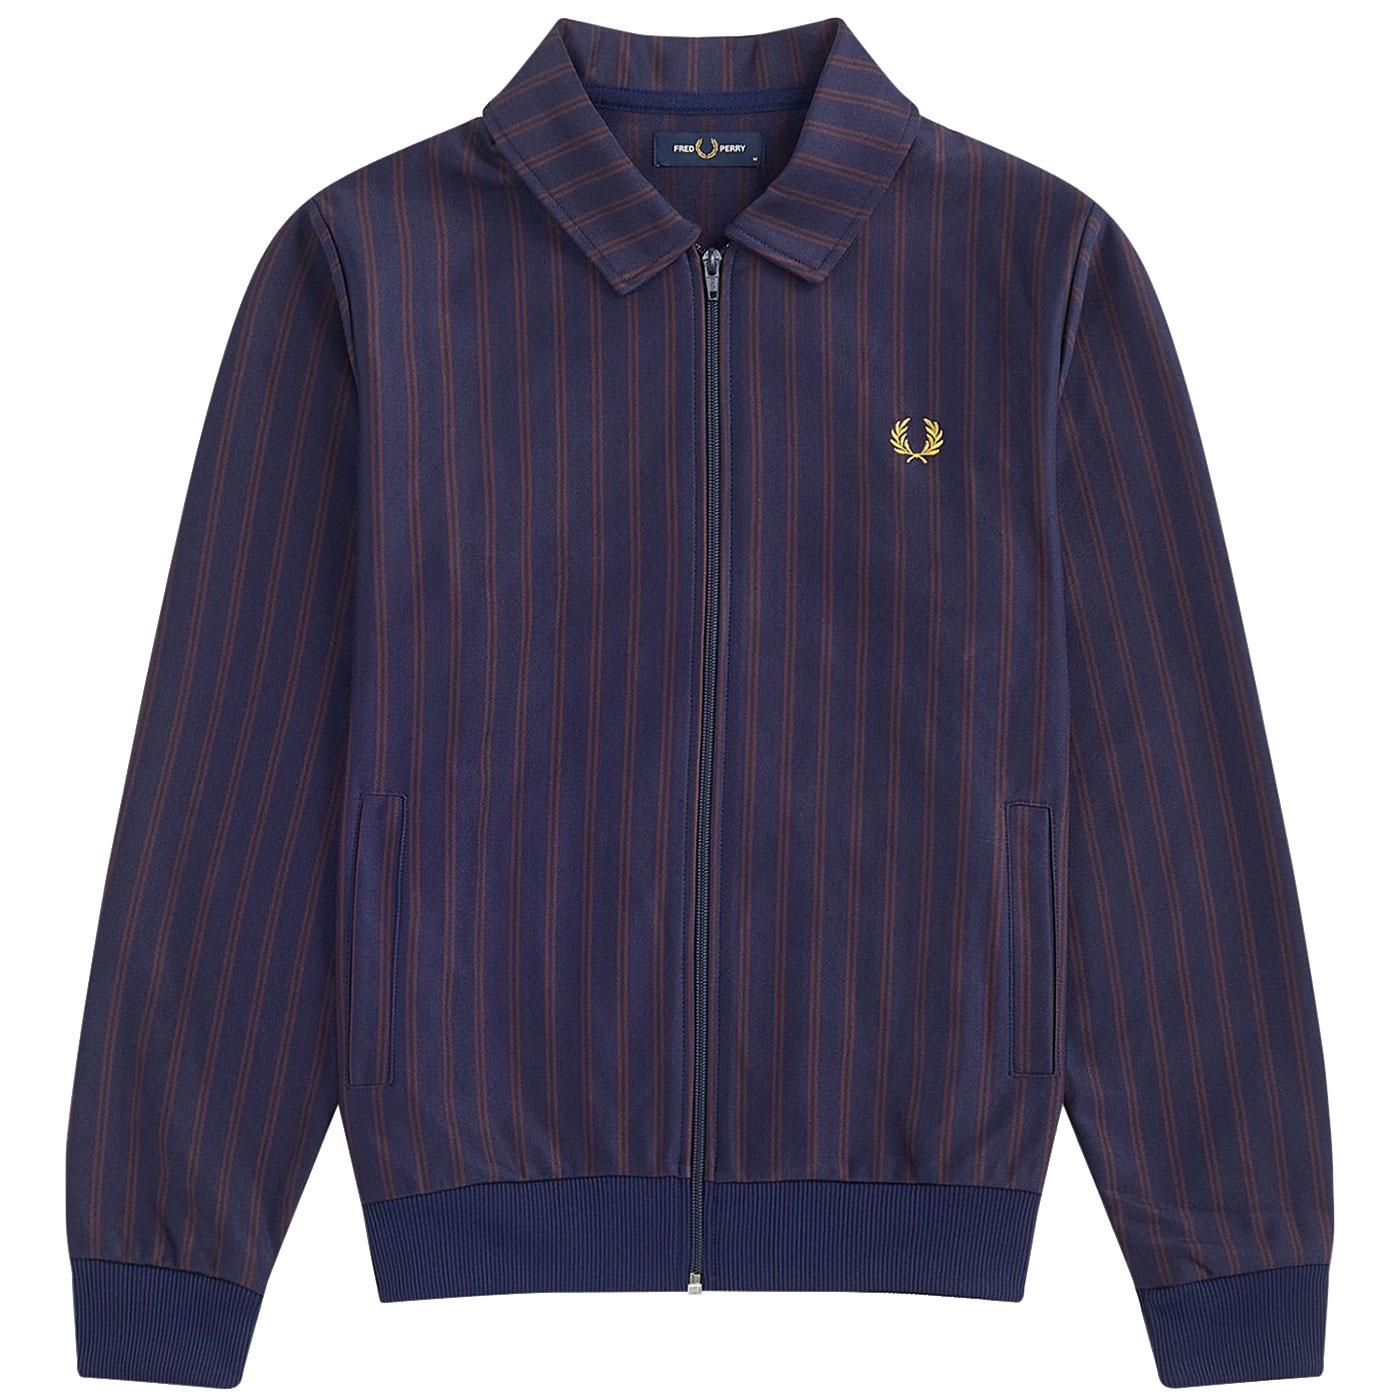 FRED PERRY Mens Retro Mod Striped Track Jacket CB